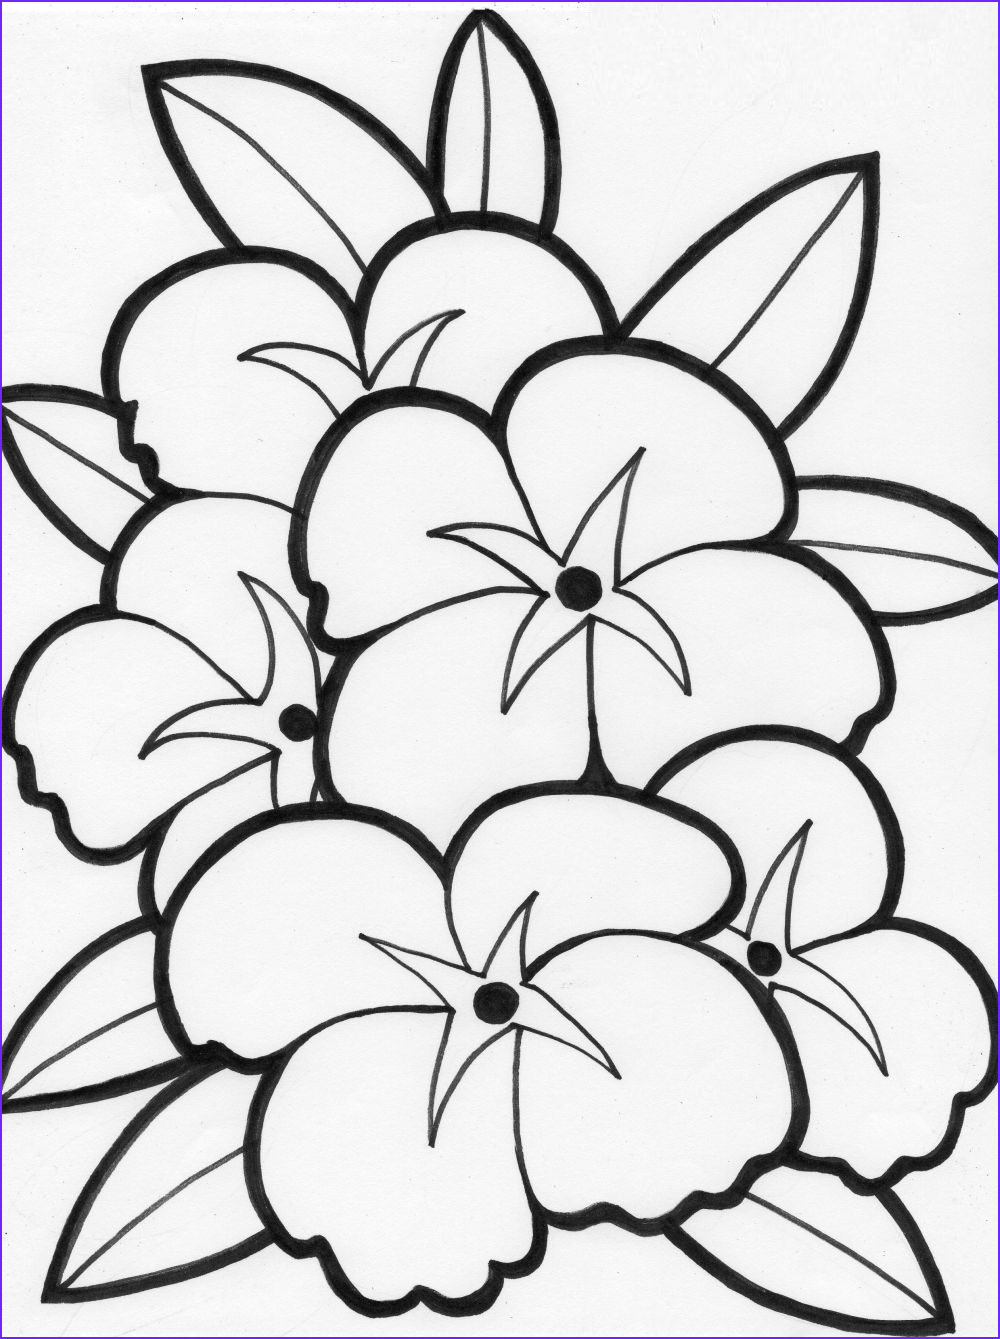 Coloring for Girls Luxury Image Coloring Pages for Girls 10 and Up